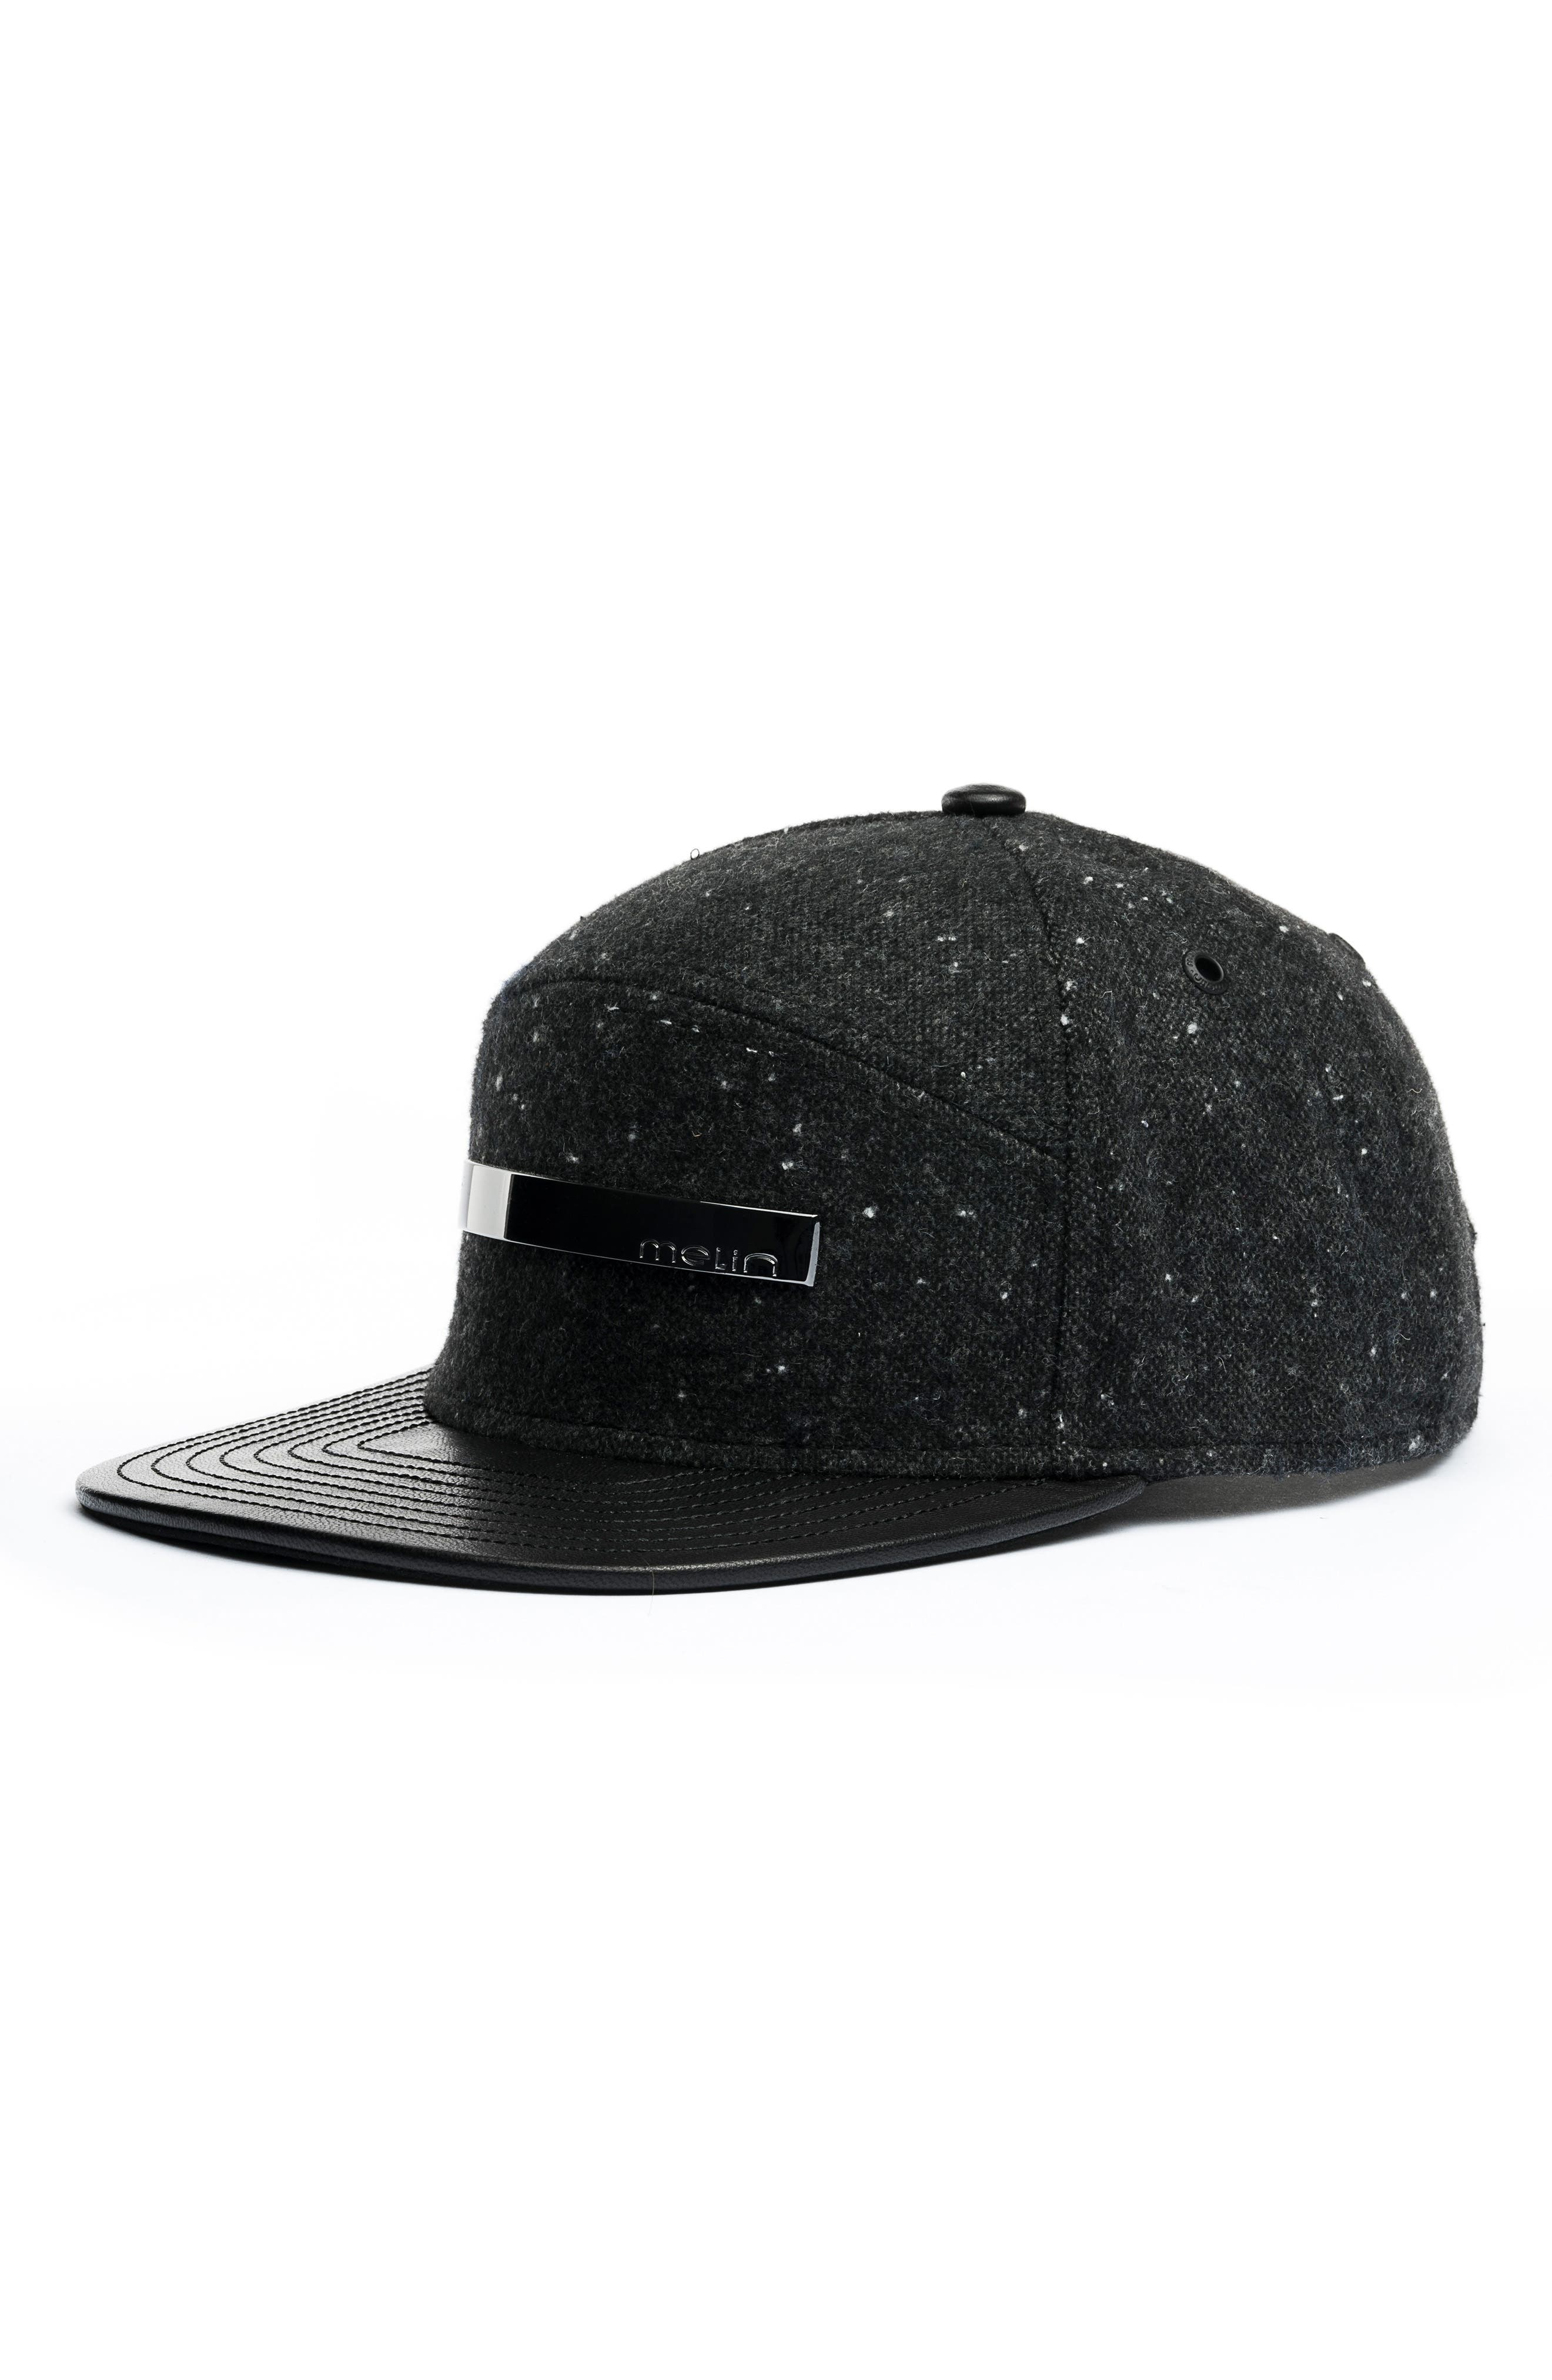 MELIN The Bar Baseball Cap